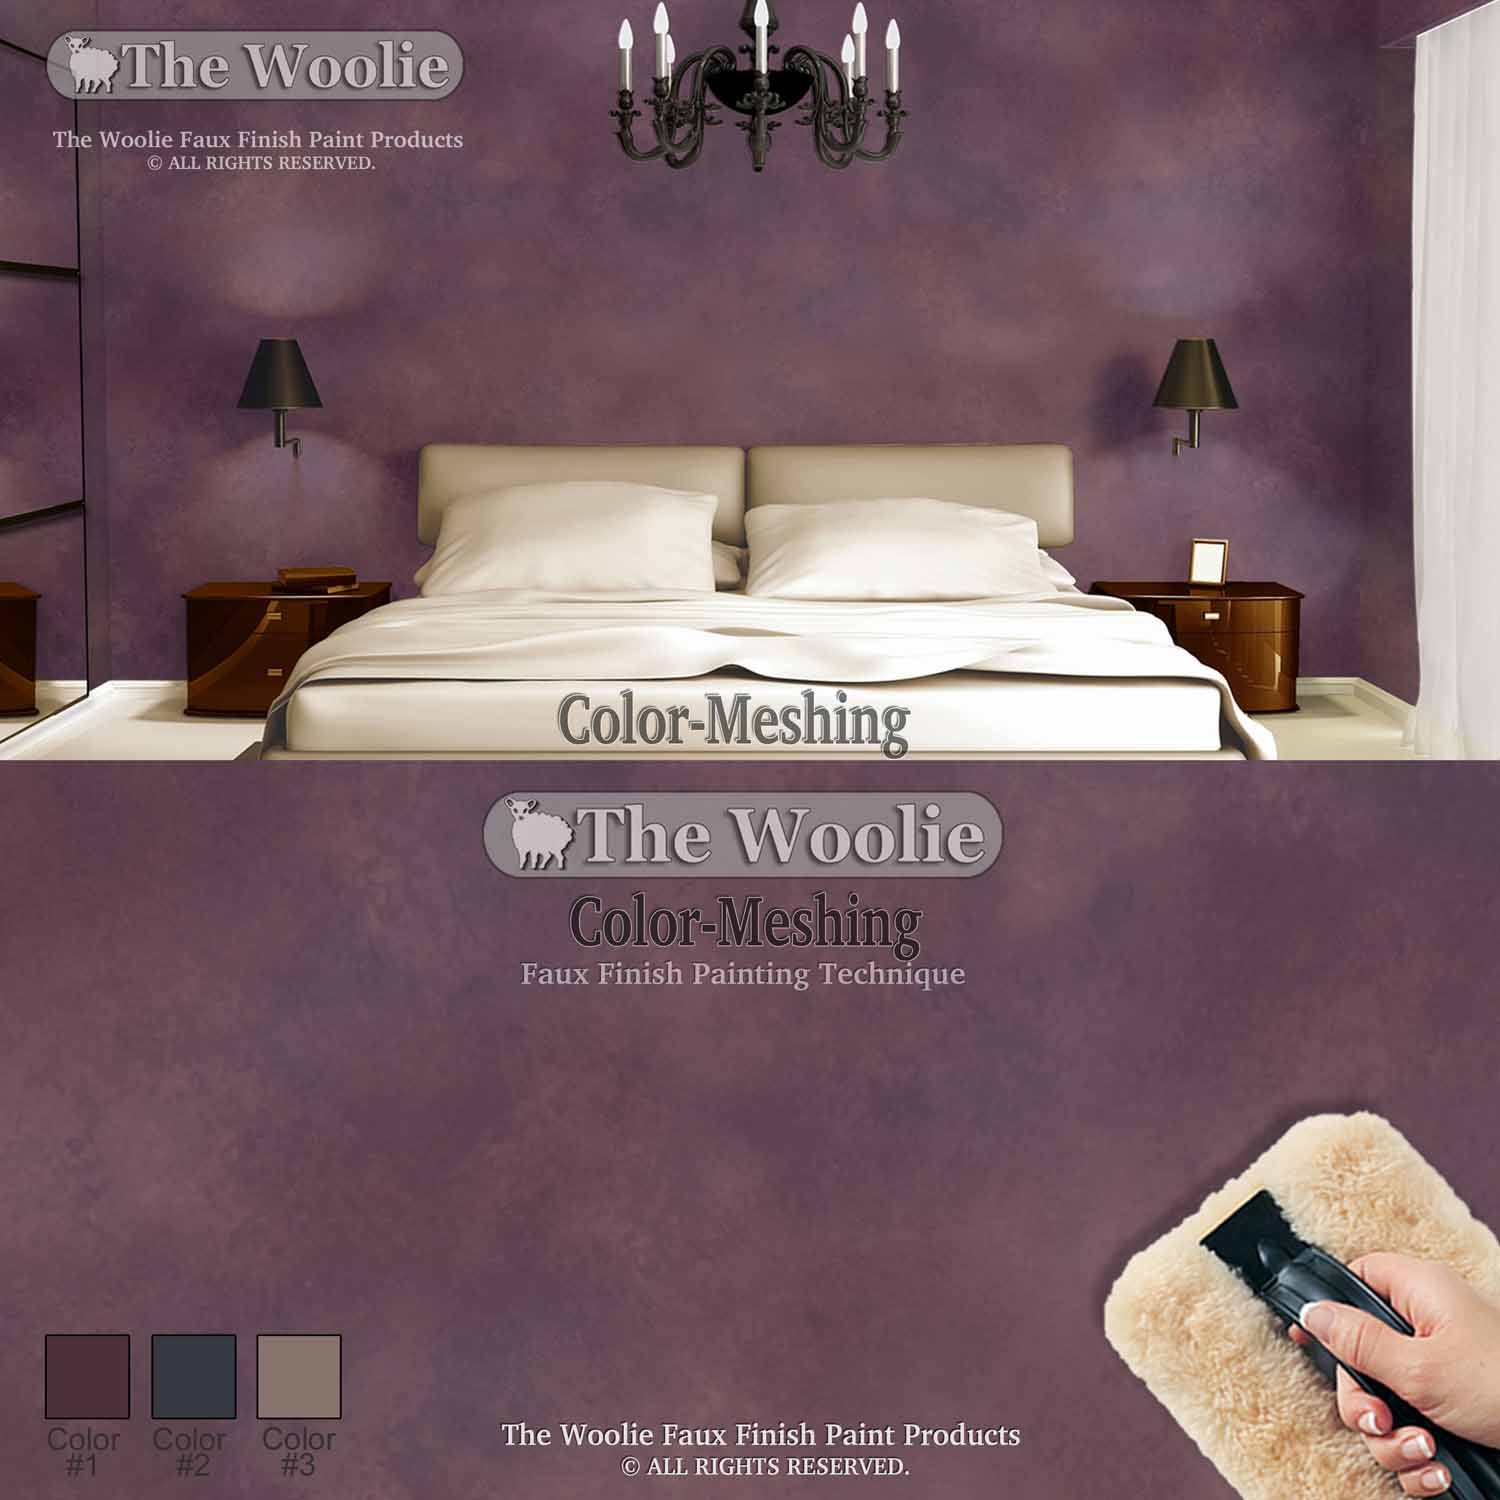 Faux finish painting painting with a twist tomball luxury dragging the woolie little woolie combo faux finish sheepskin paint pad set by the woolie house paint amazoncom with faux finish painting altavistaventures Image collections